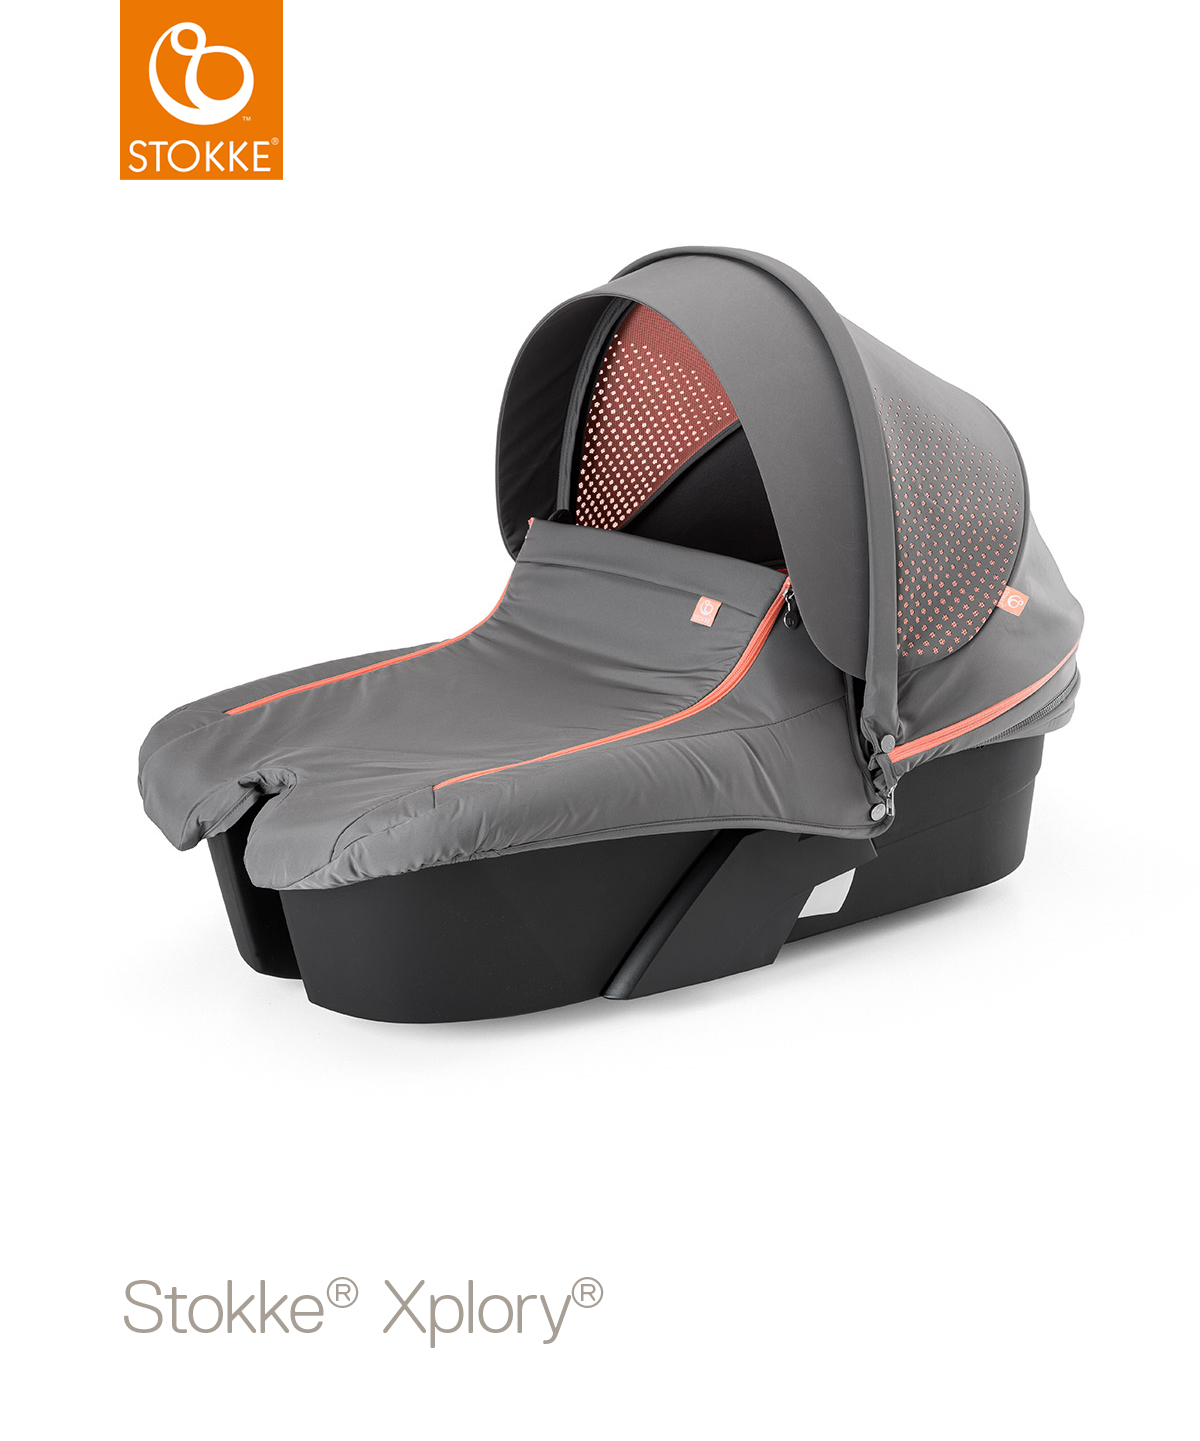 Люлька Stokke в коляску XPLORY Black Series Athleisure Coral, цвет: коралловыйStokke®<br>Люлька Stokke в коляску XPLORY Black Series Athleisure Coral, цвет: коралловый<br>